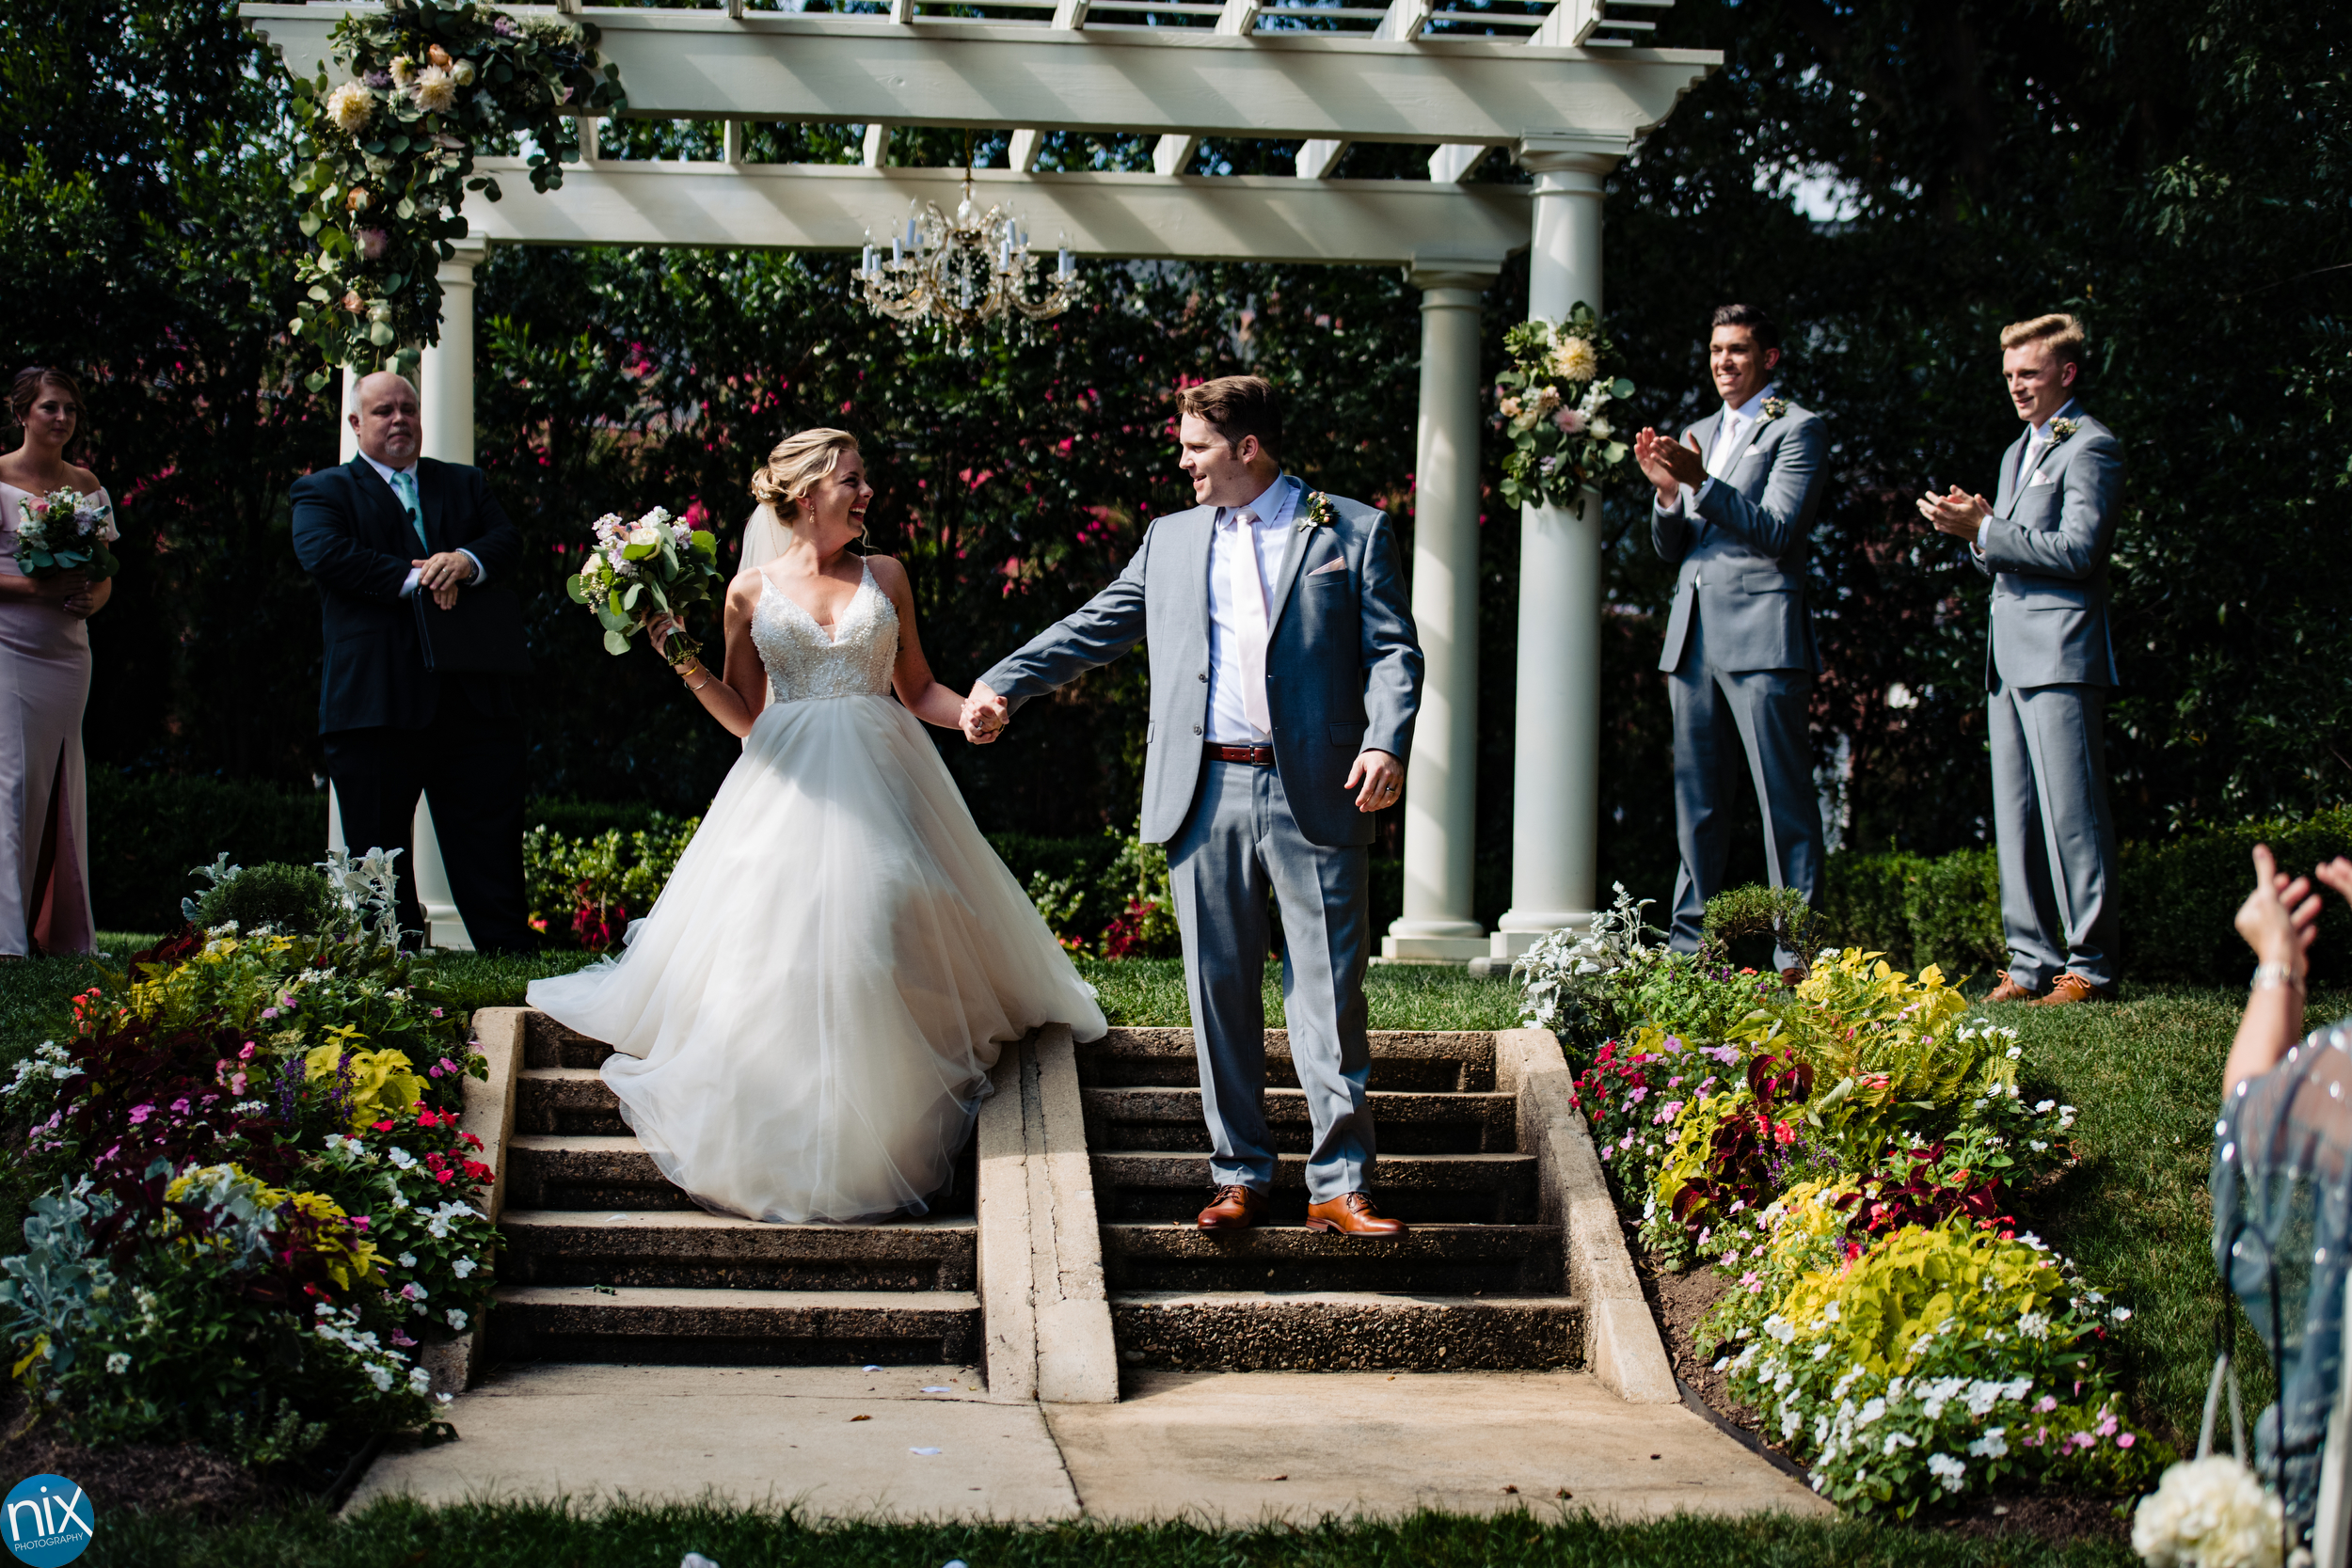 Caroline and Zach's Wedding at Separk Mansion on Saturday, August 3, 2019.